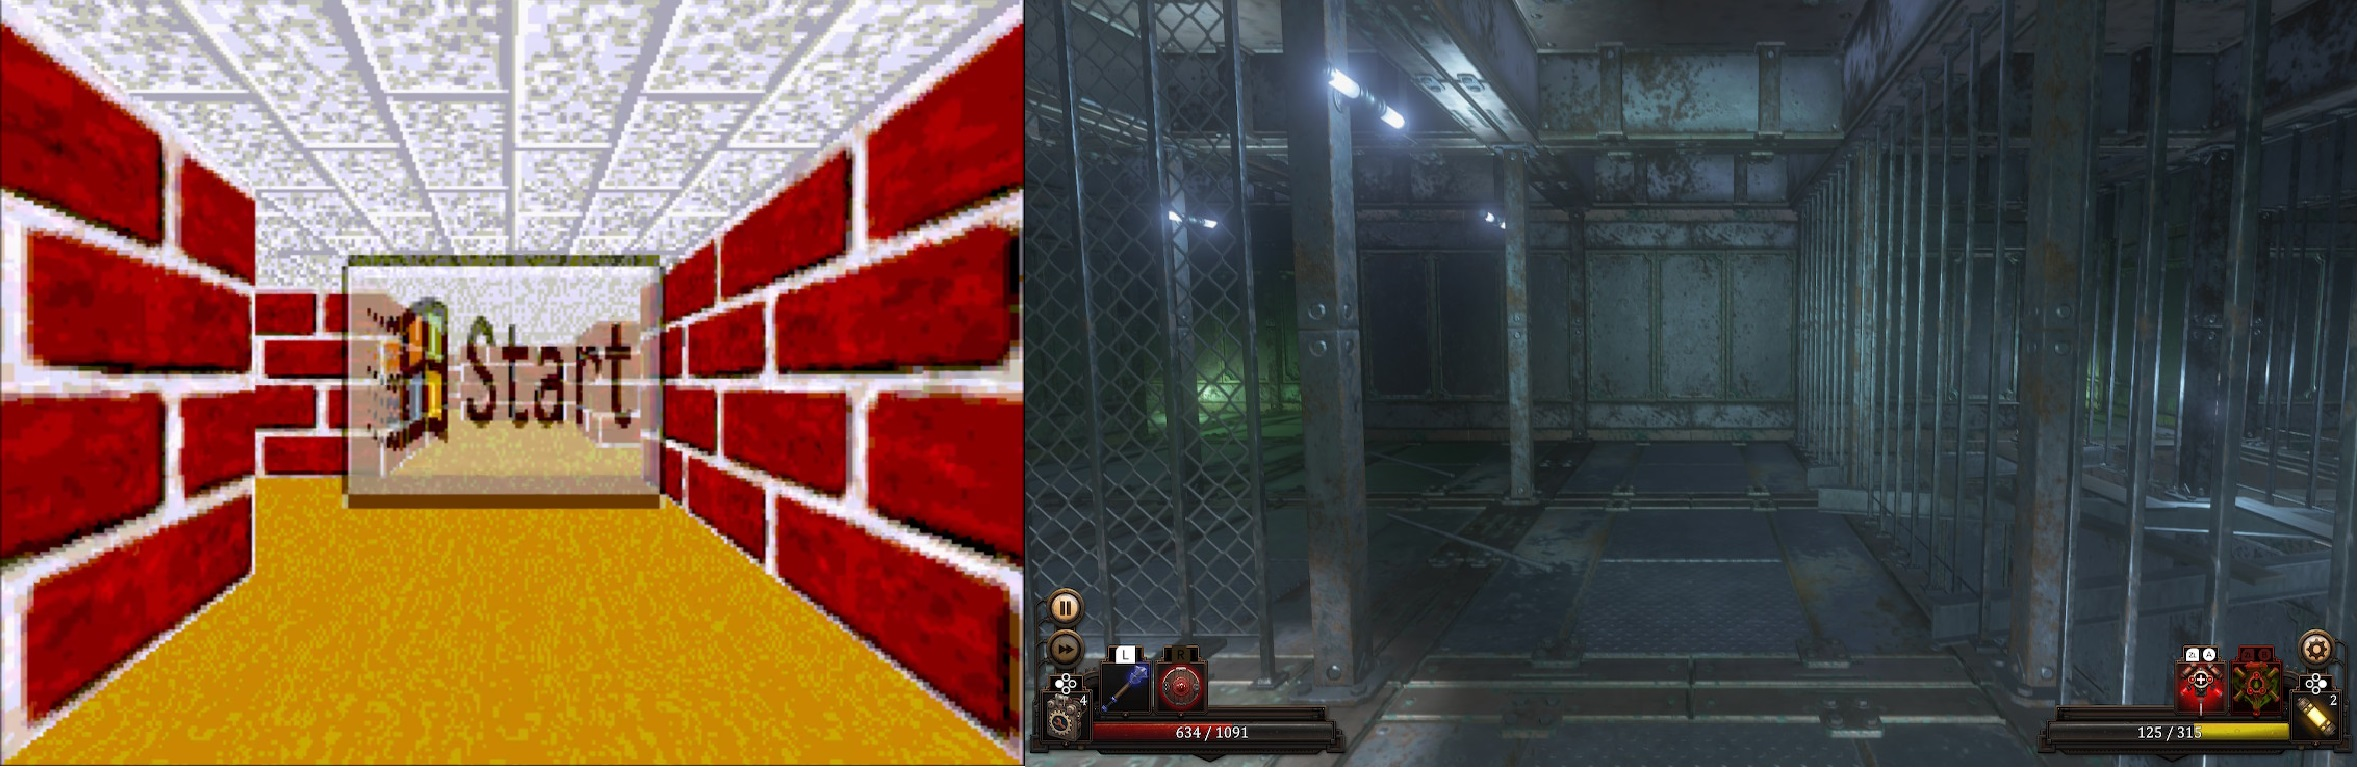 Vaporum & Windows Maze